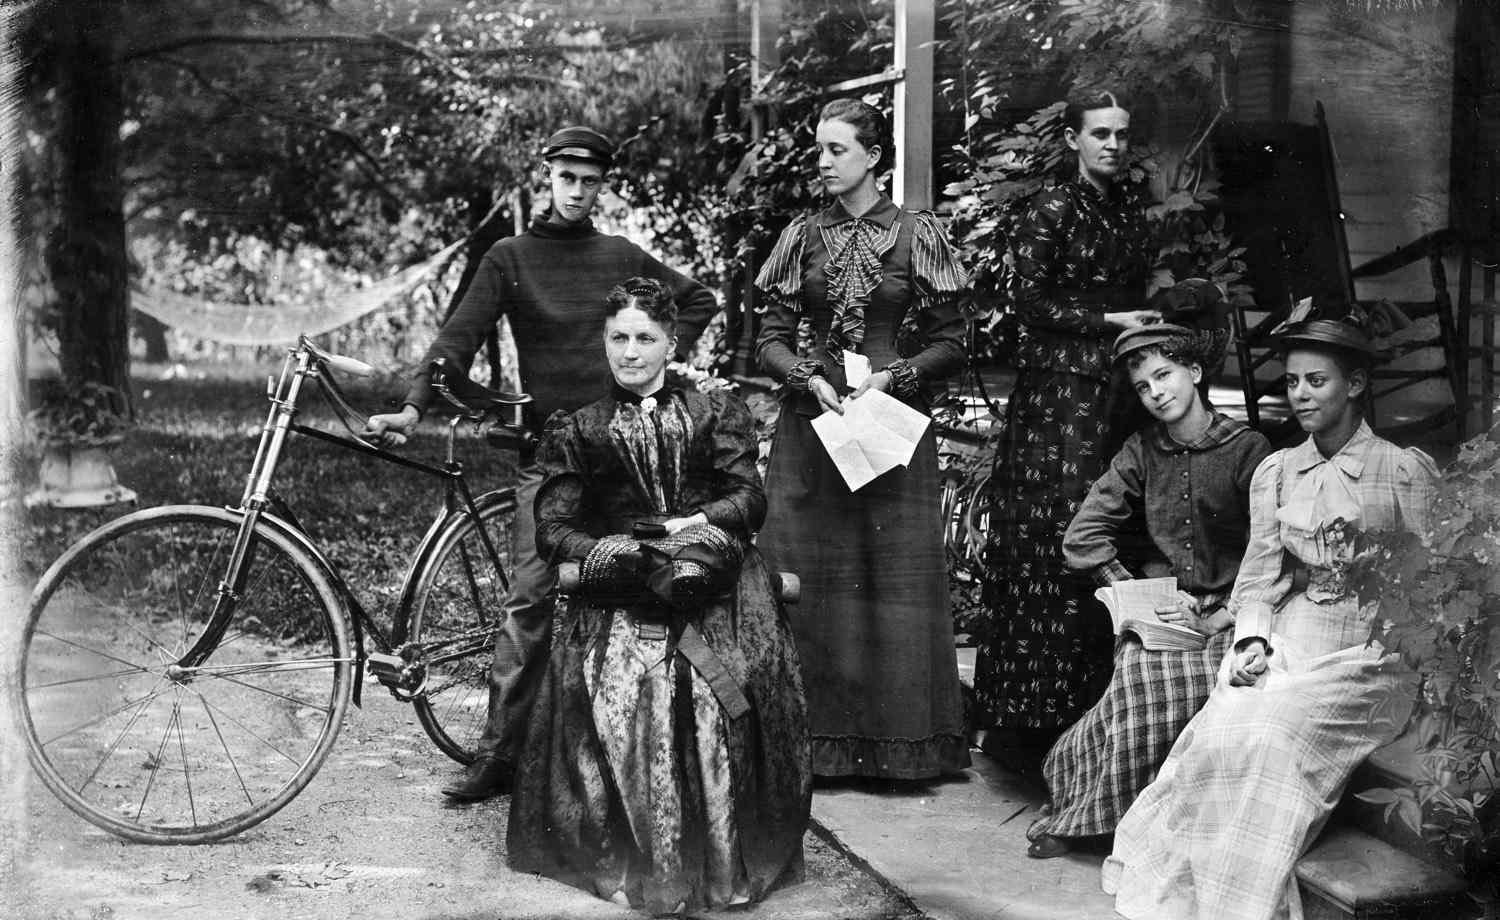 5 women and a man with a bicycle posing on front porch in 1890